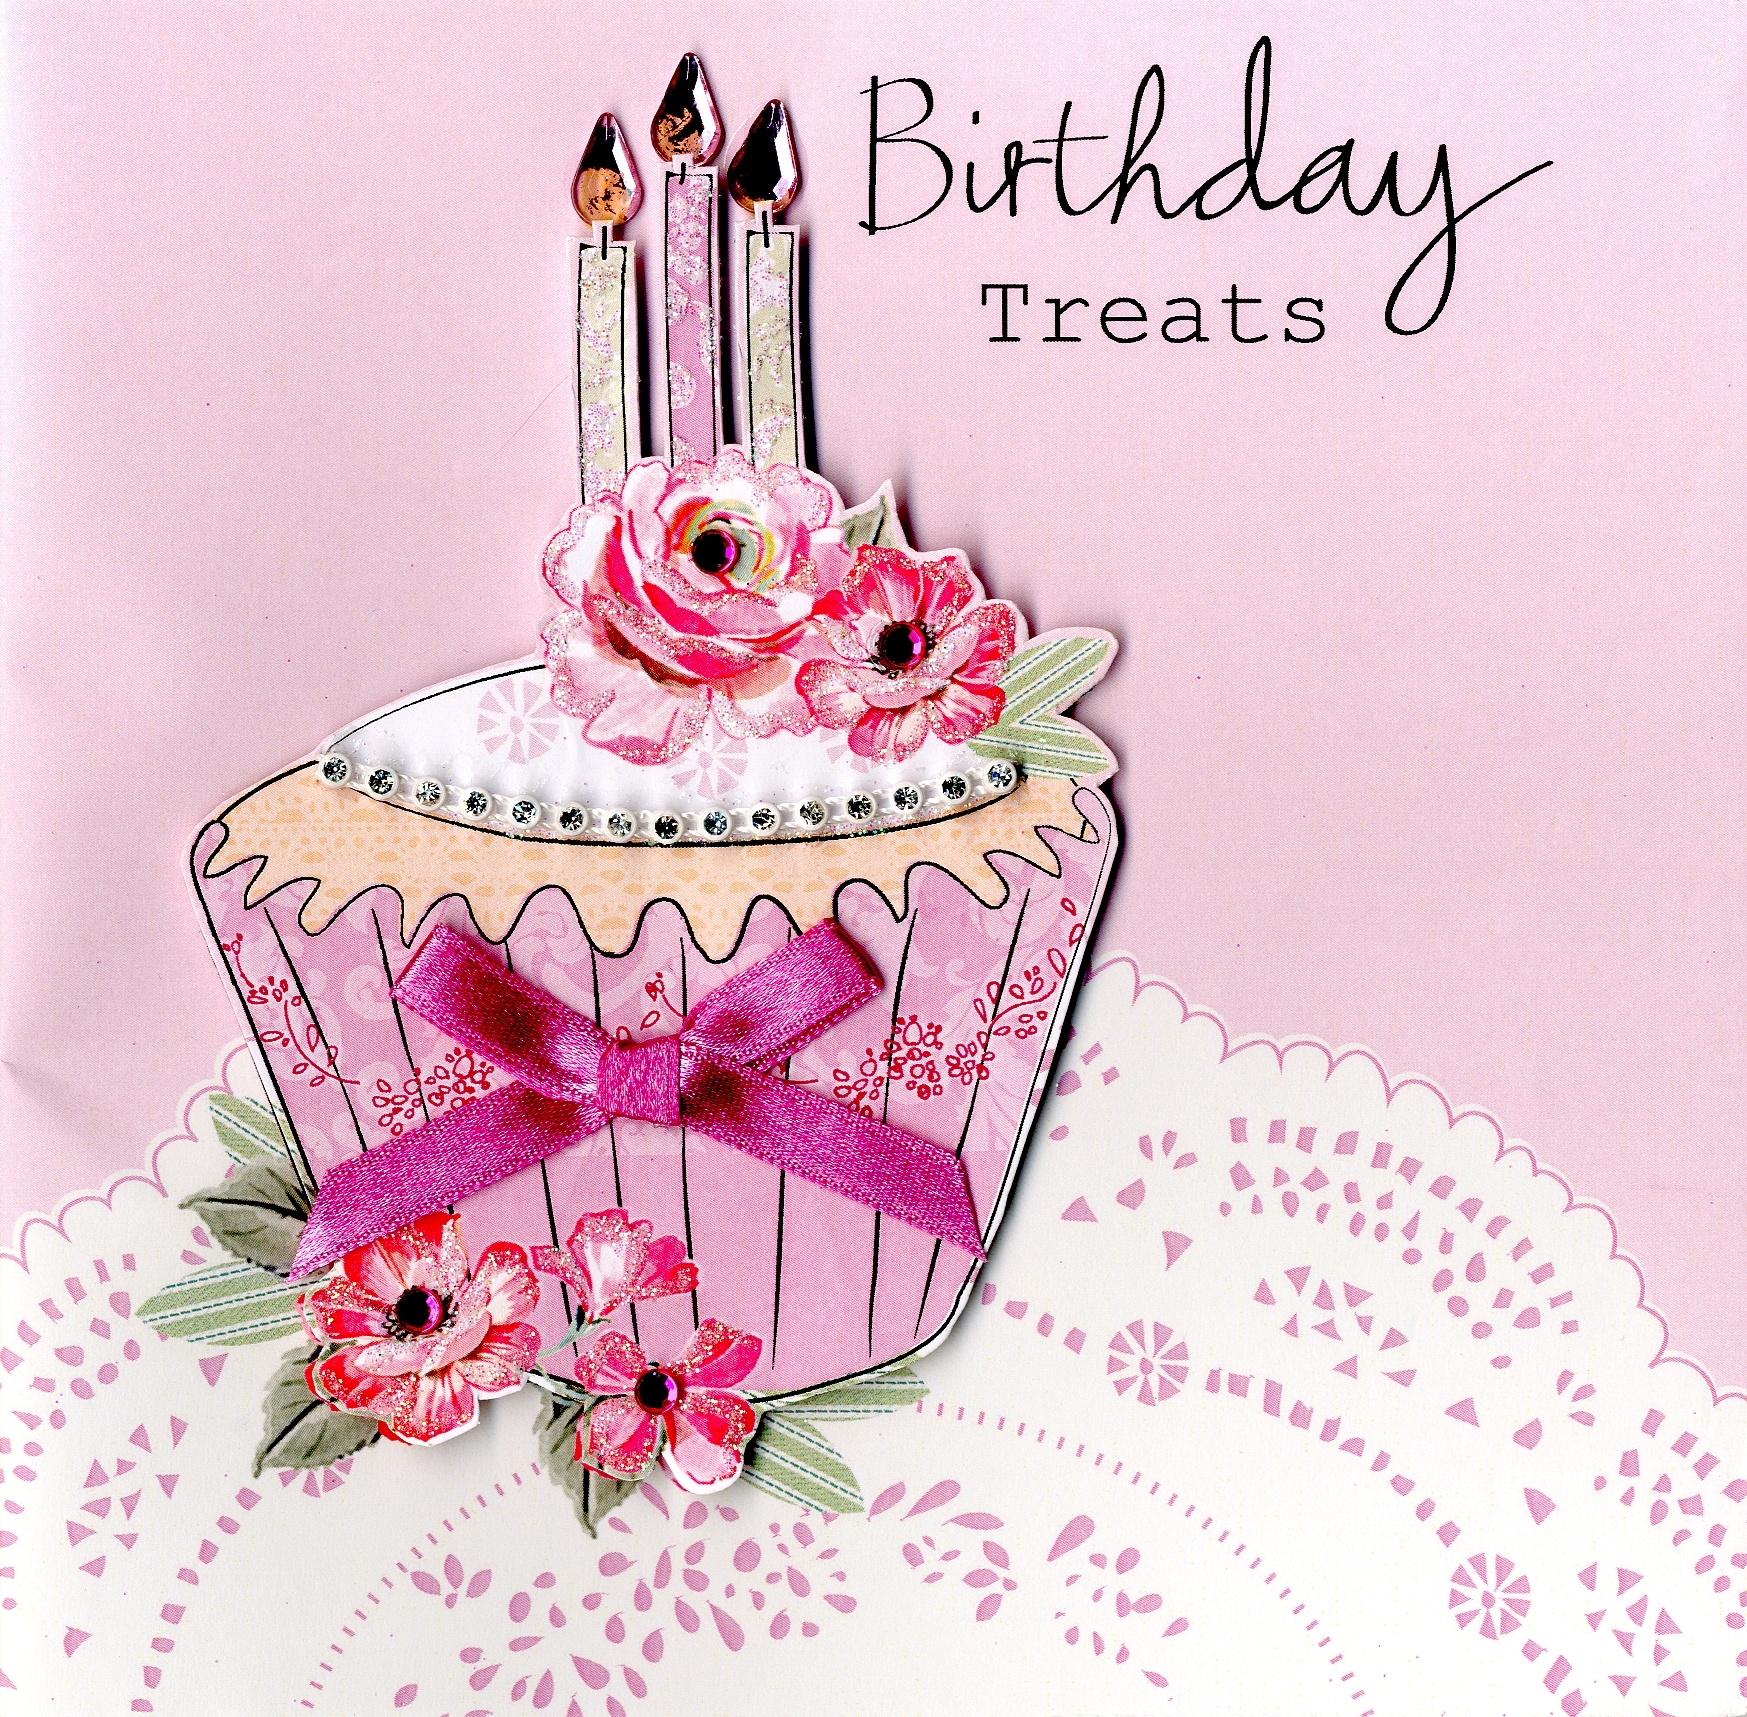 Embellished Cupcake Birthday Treats Card